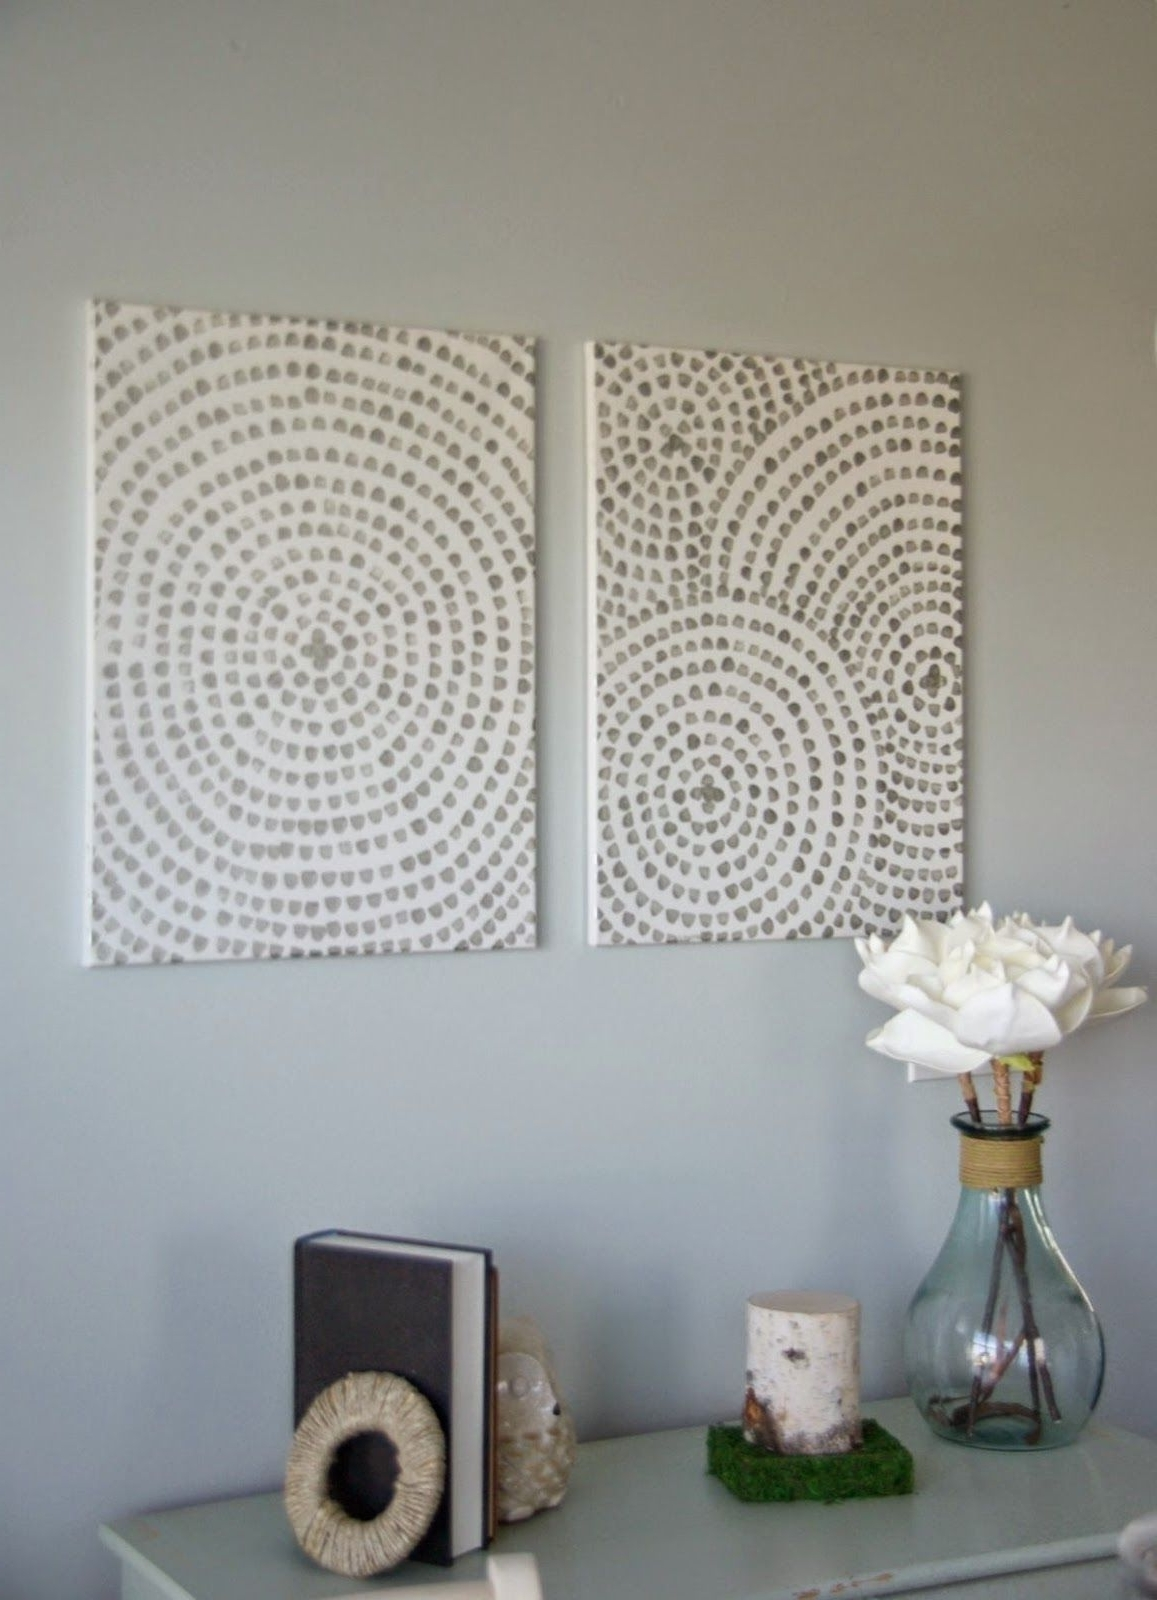 Easy Canvas Wall Art, Making Diy Wall Art Is Simple And Inexpensive Within Recent Inexpensive Wall Art (View 4 of 20)